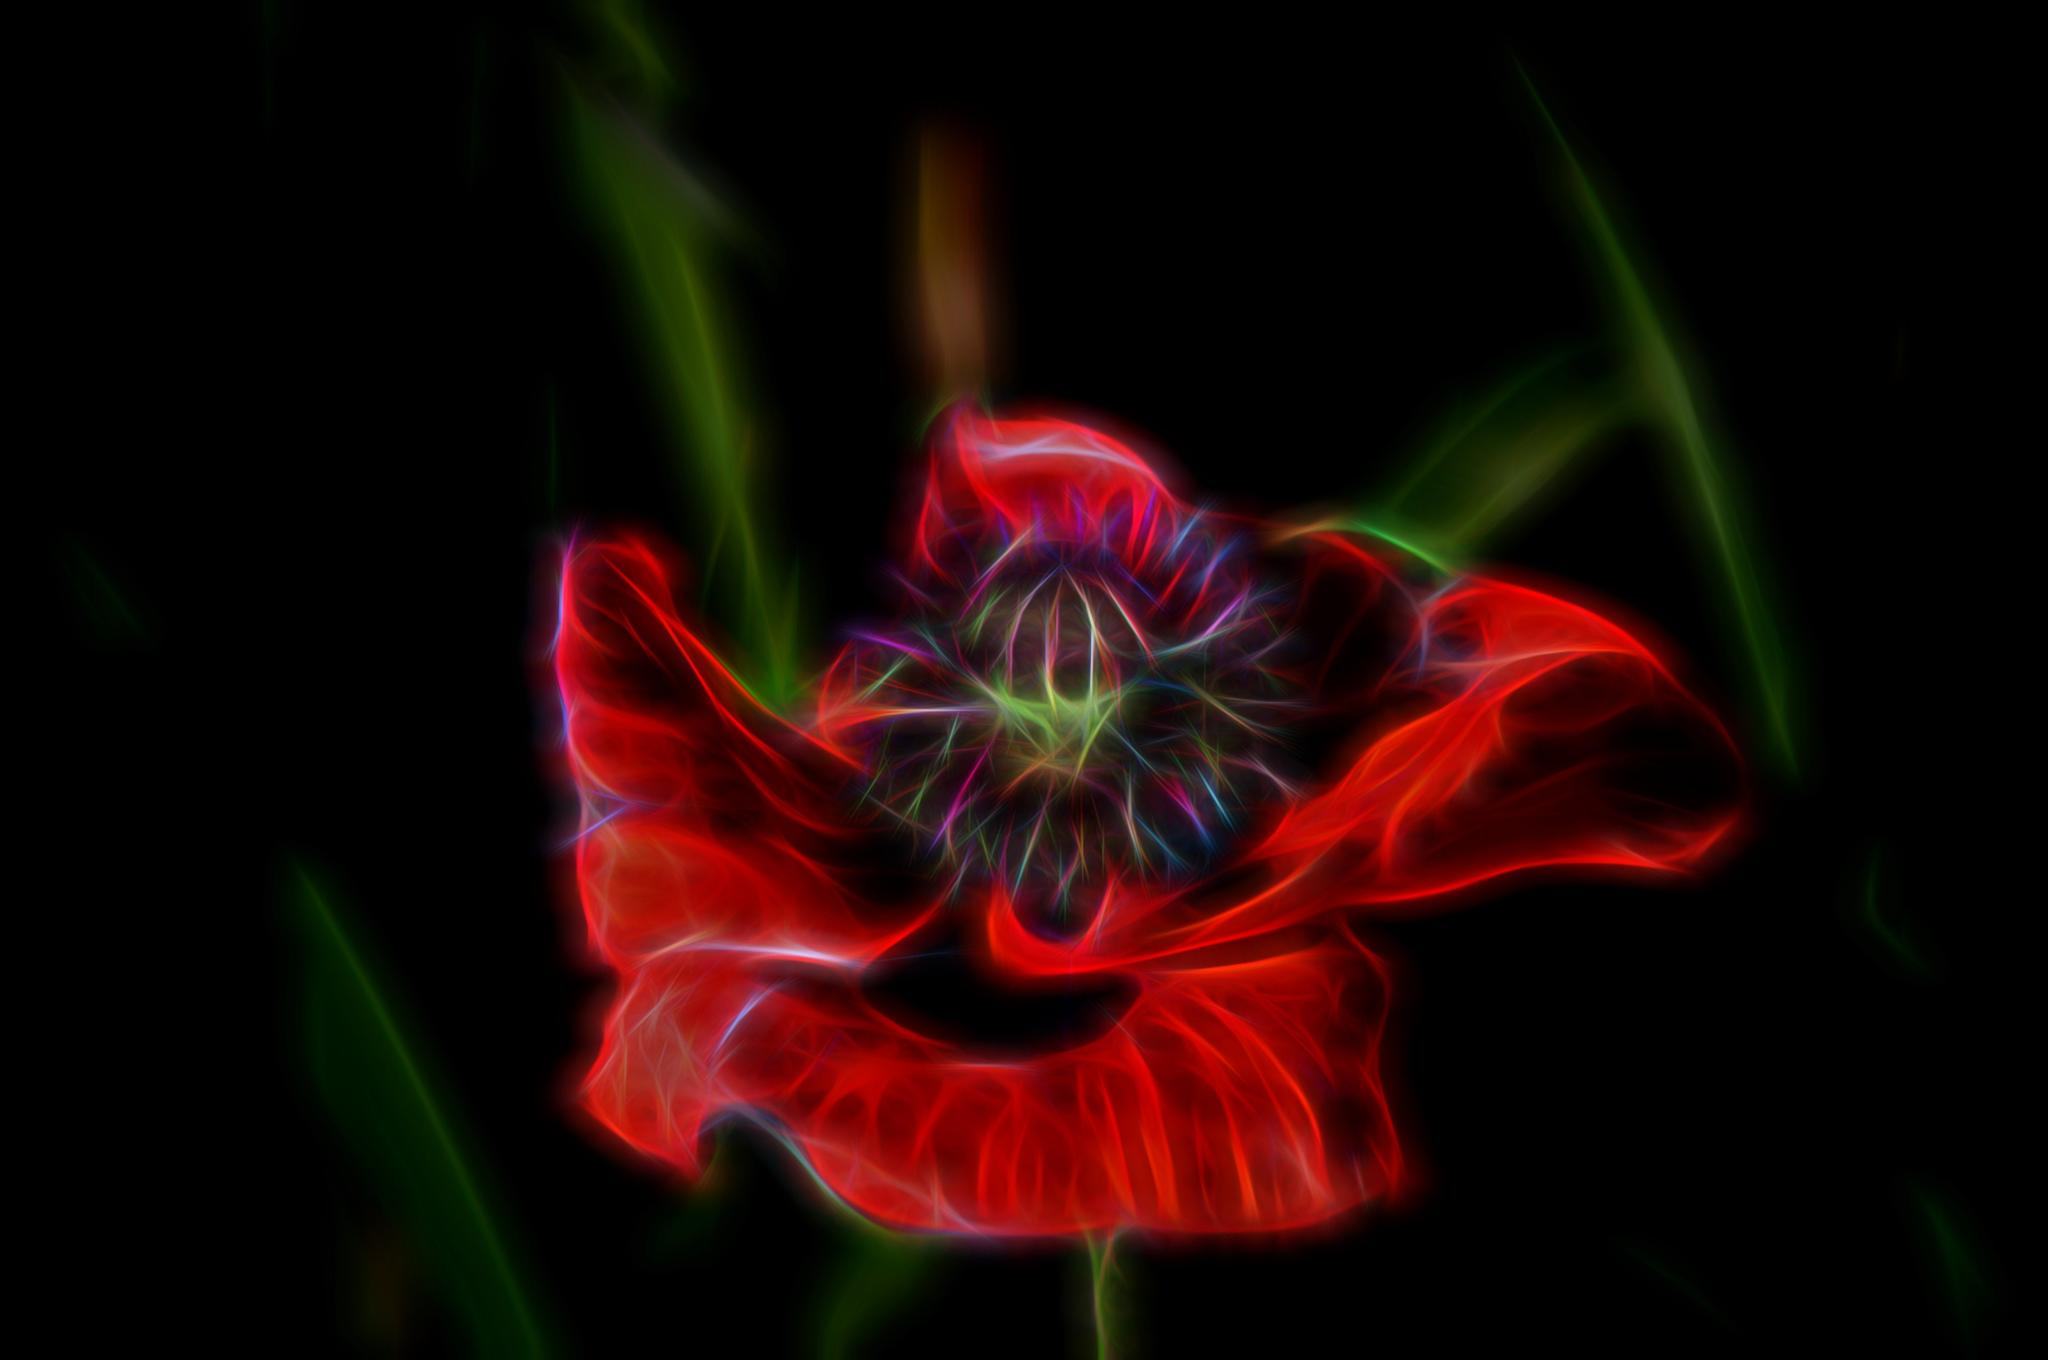 Red Poppy Digital Art by twopointeightphotography